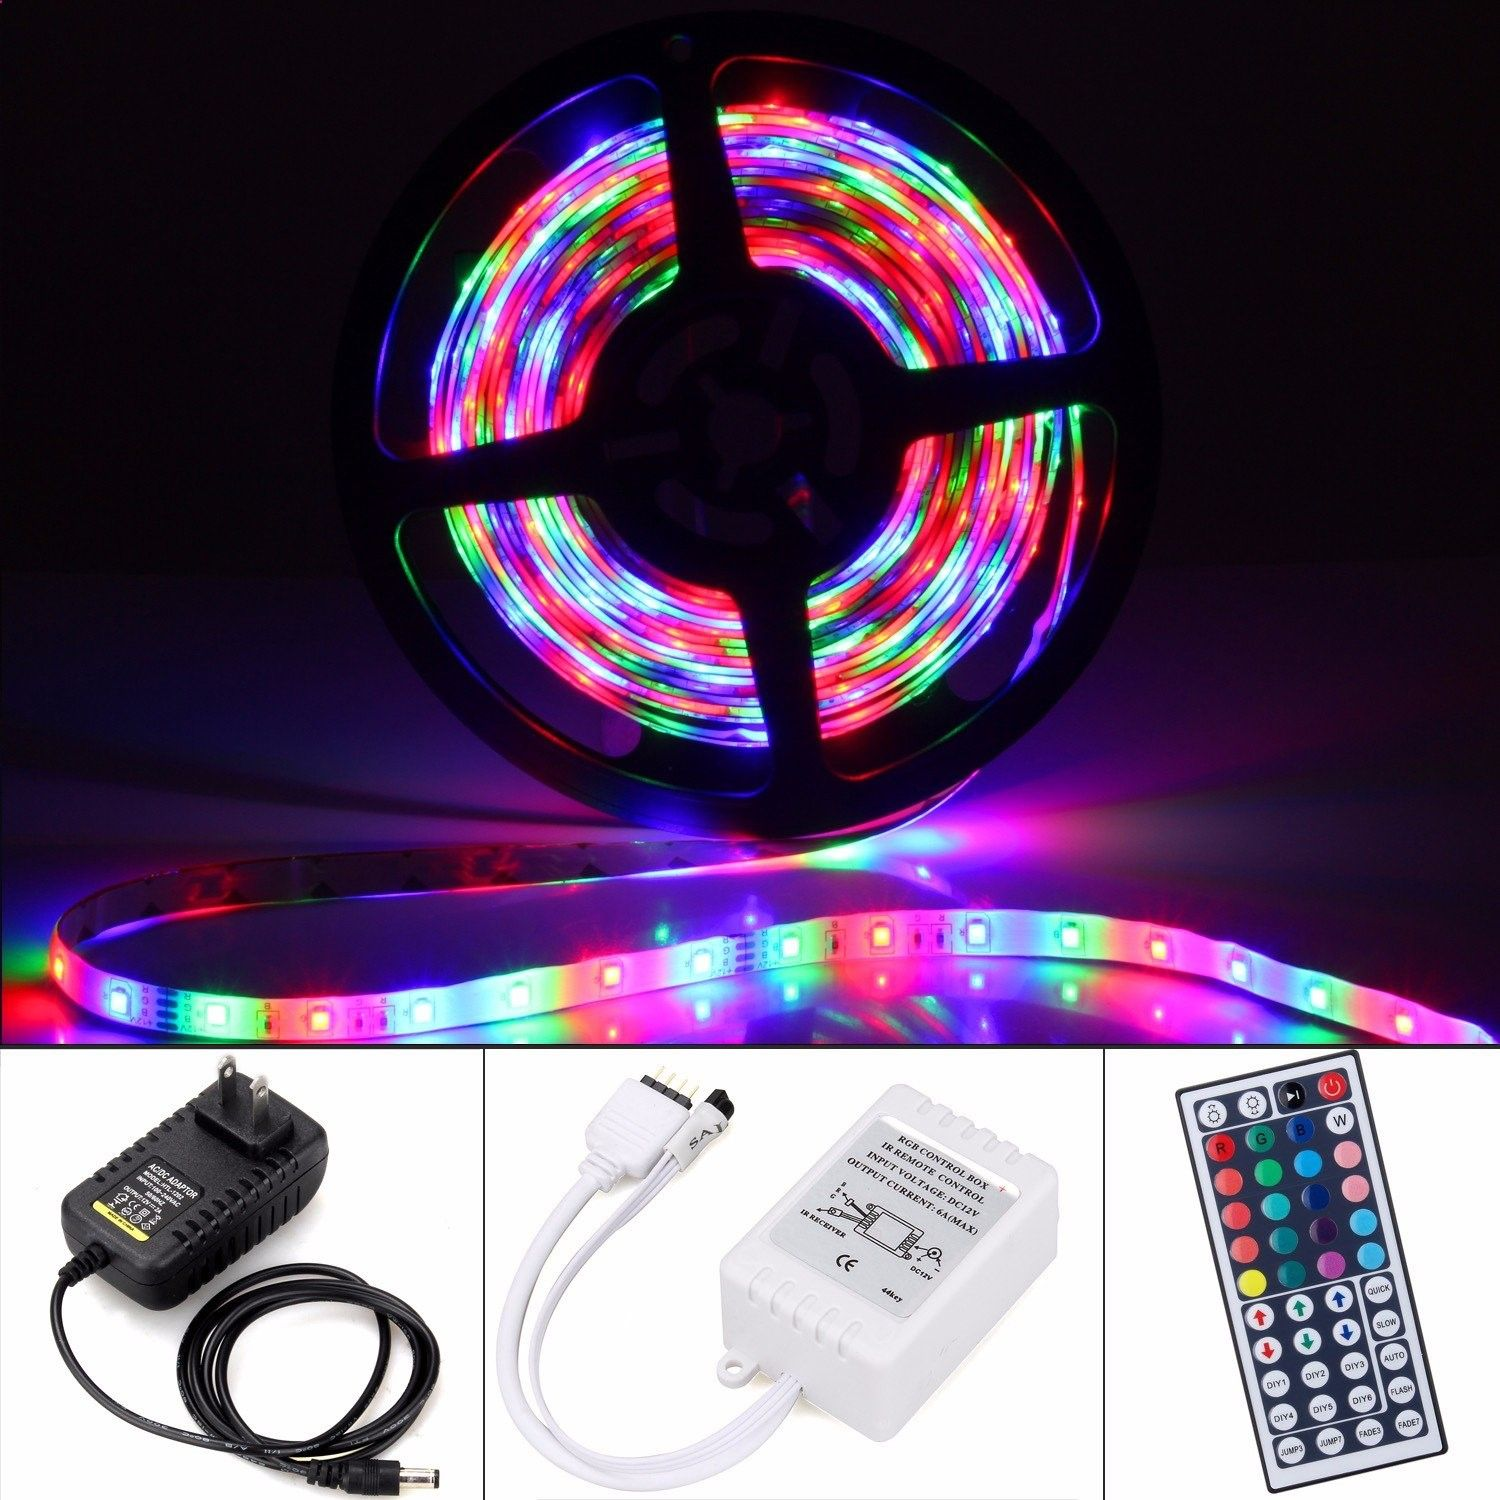 12V Waterproof Led Light Strips Brilliant Sokani Waterproof Led Strip Lights164Ft 300 Leds Color Changing Decorating Inspiration